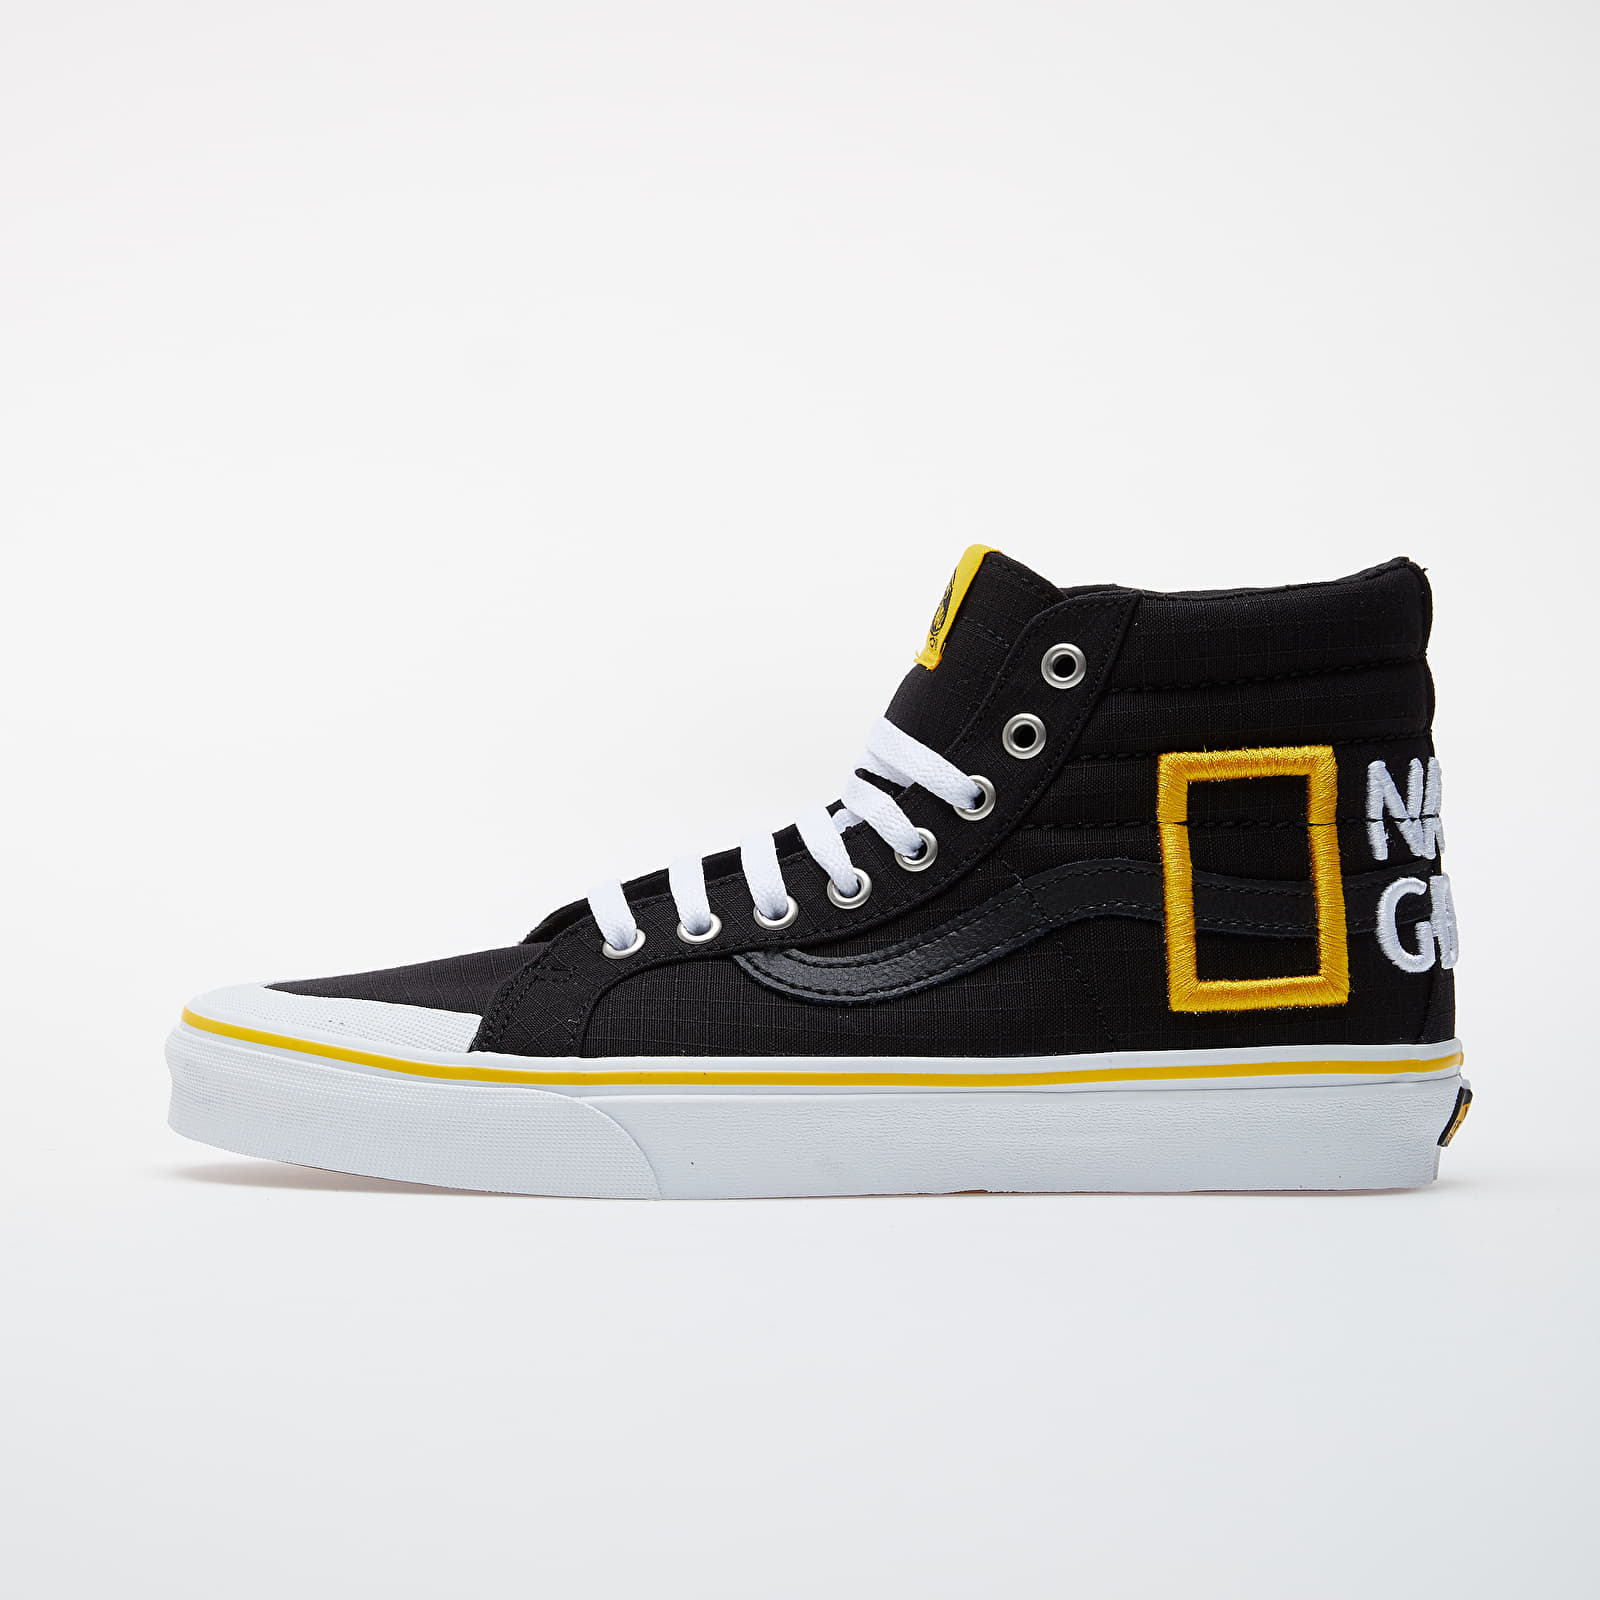 Vans Sk8-Hi Reissue 13 (National Geographic)